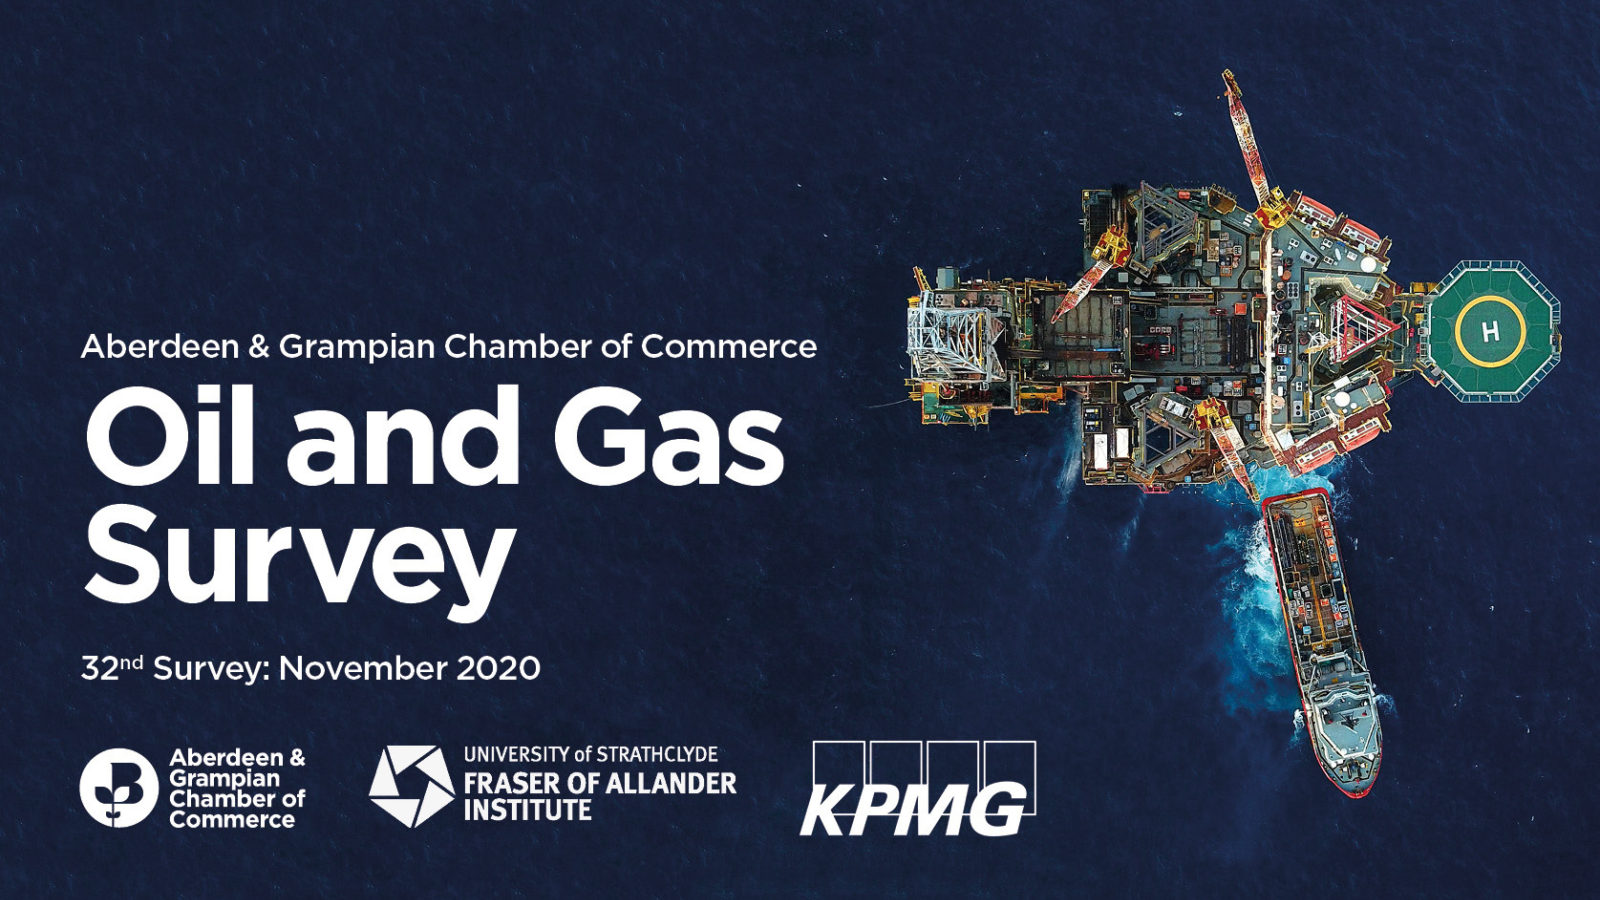 32nd Oil & Gas Survey launch: Understanding the drivers, challenges and opportunities which are influencing future activity is invaluable for the North-east economy